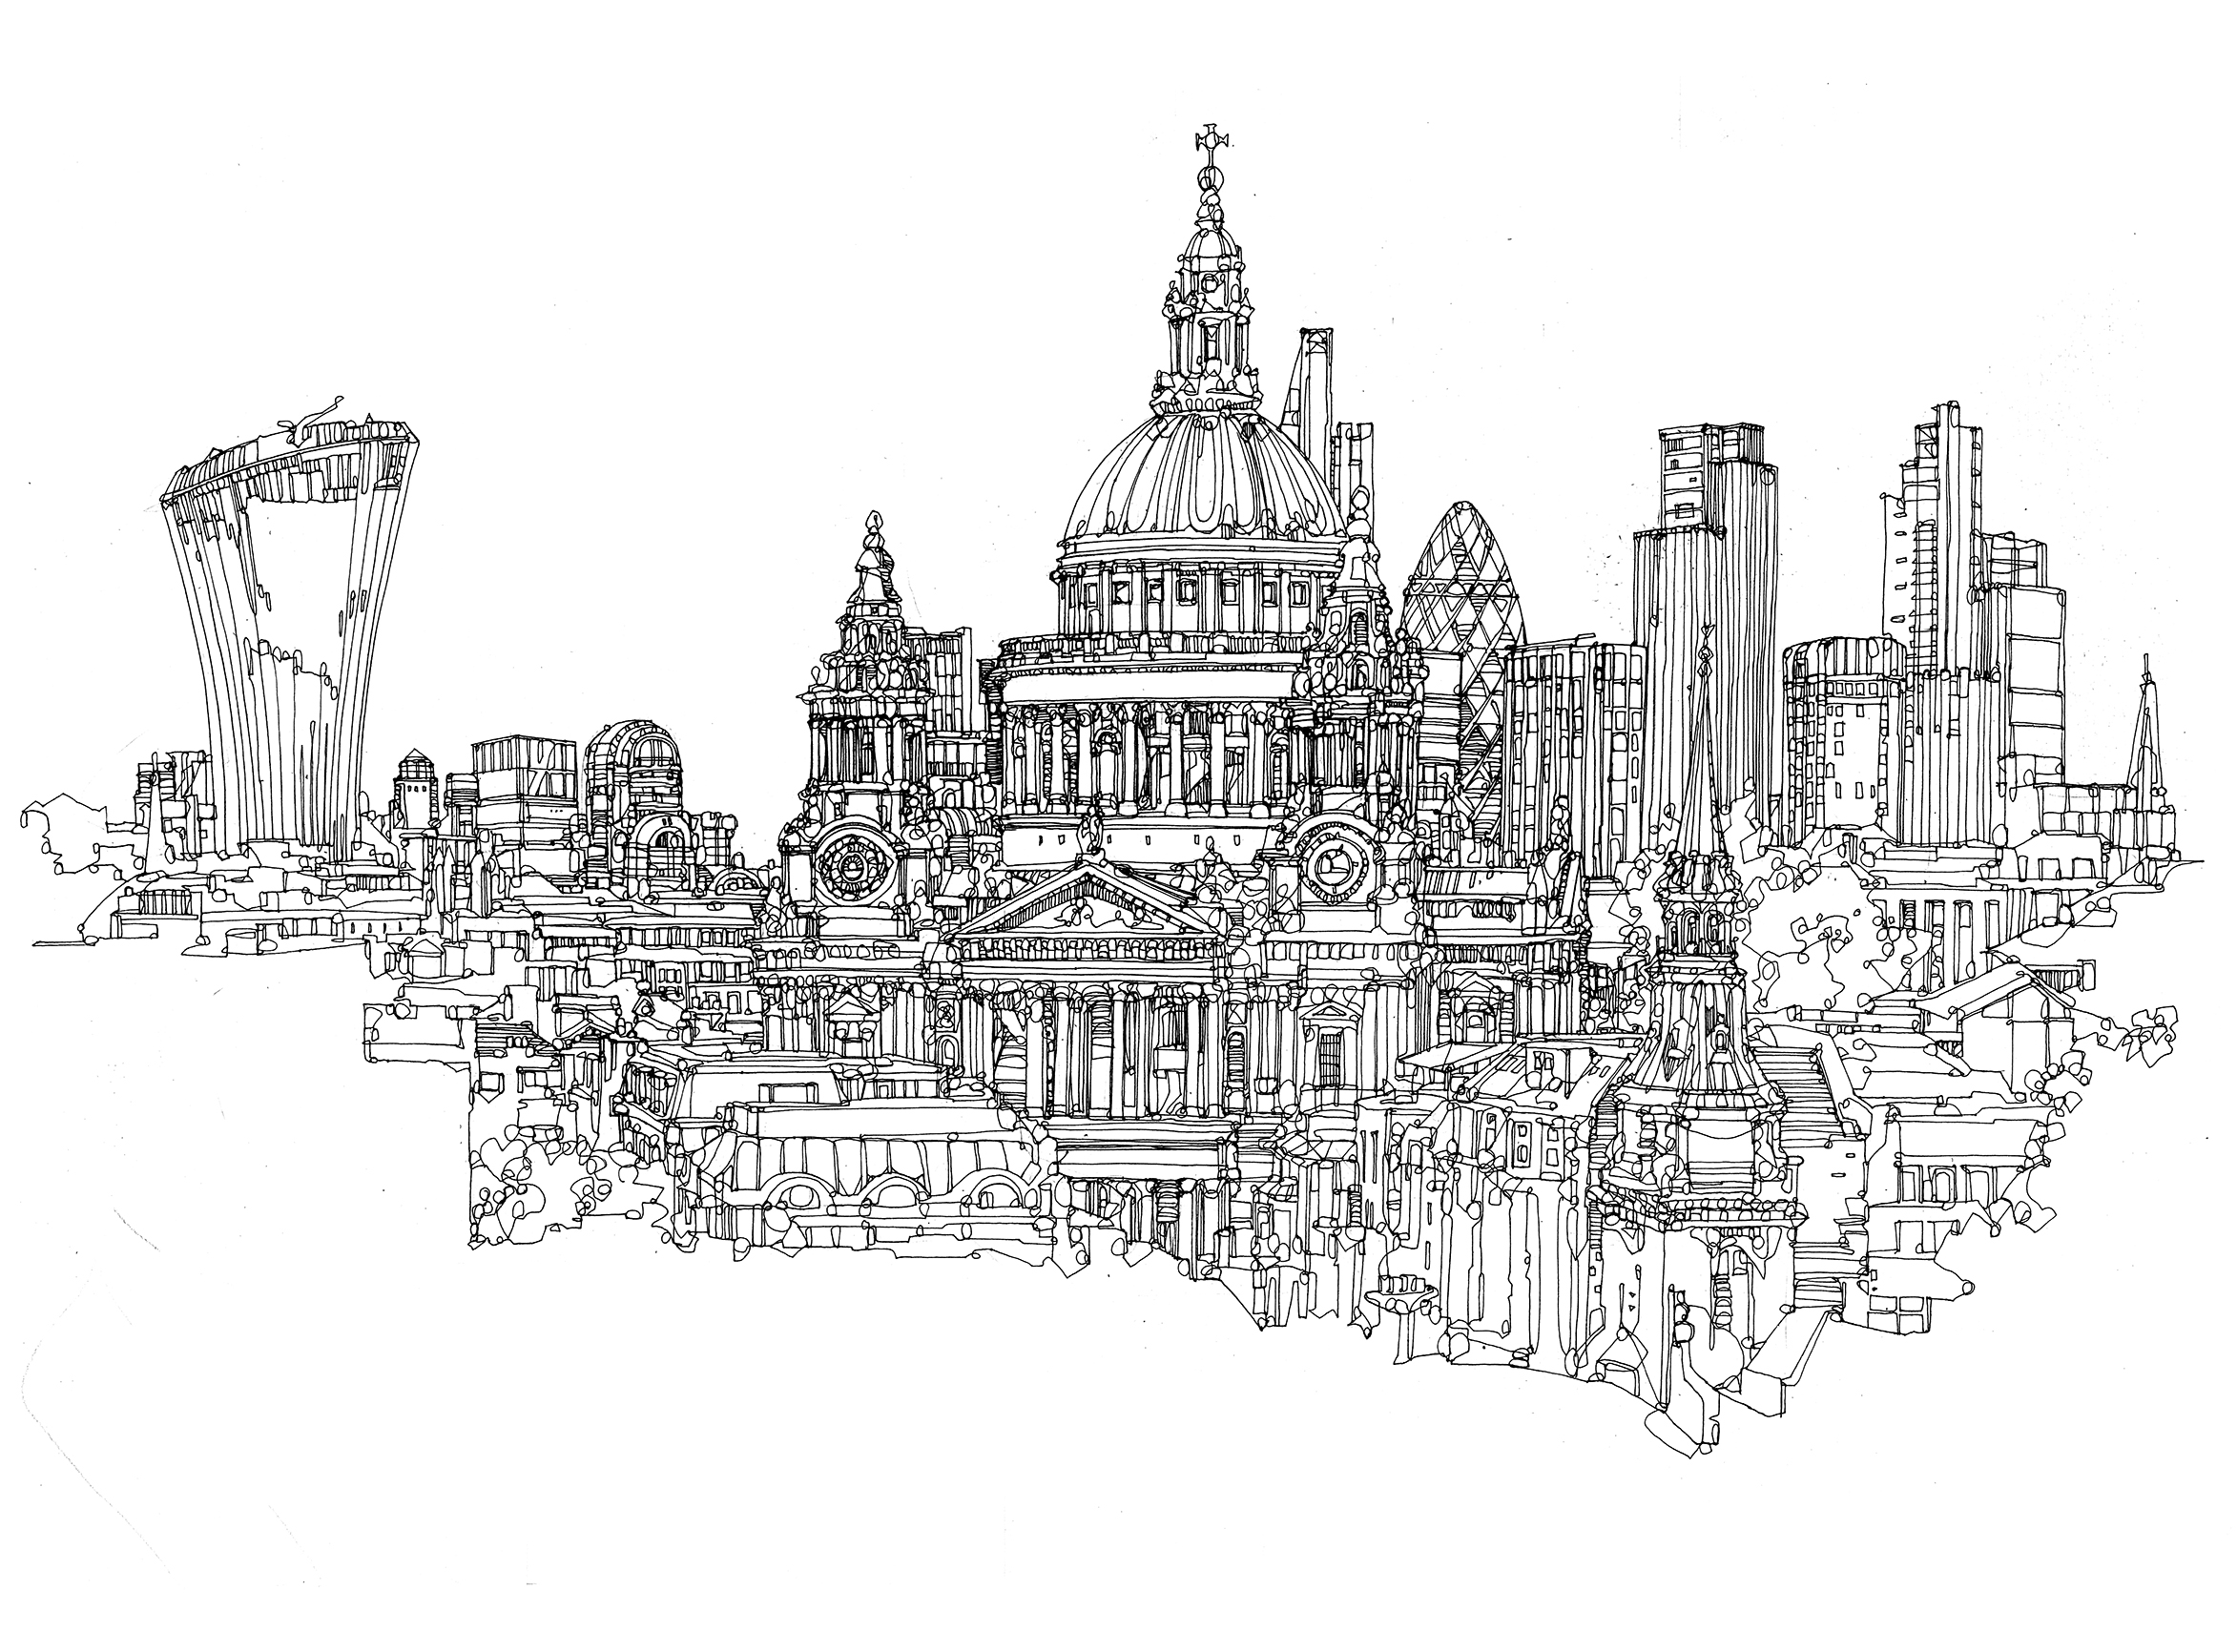 st paul architectural illustration drawing illustrated maps.jpg